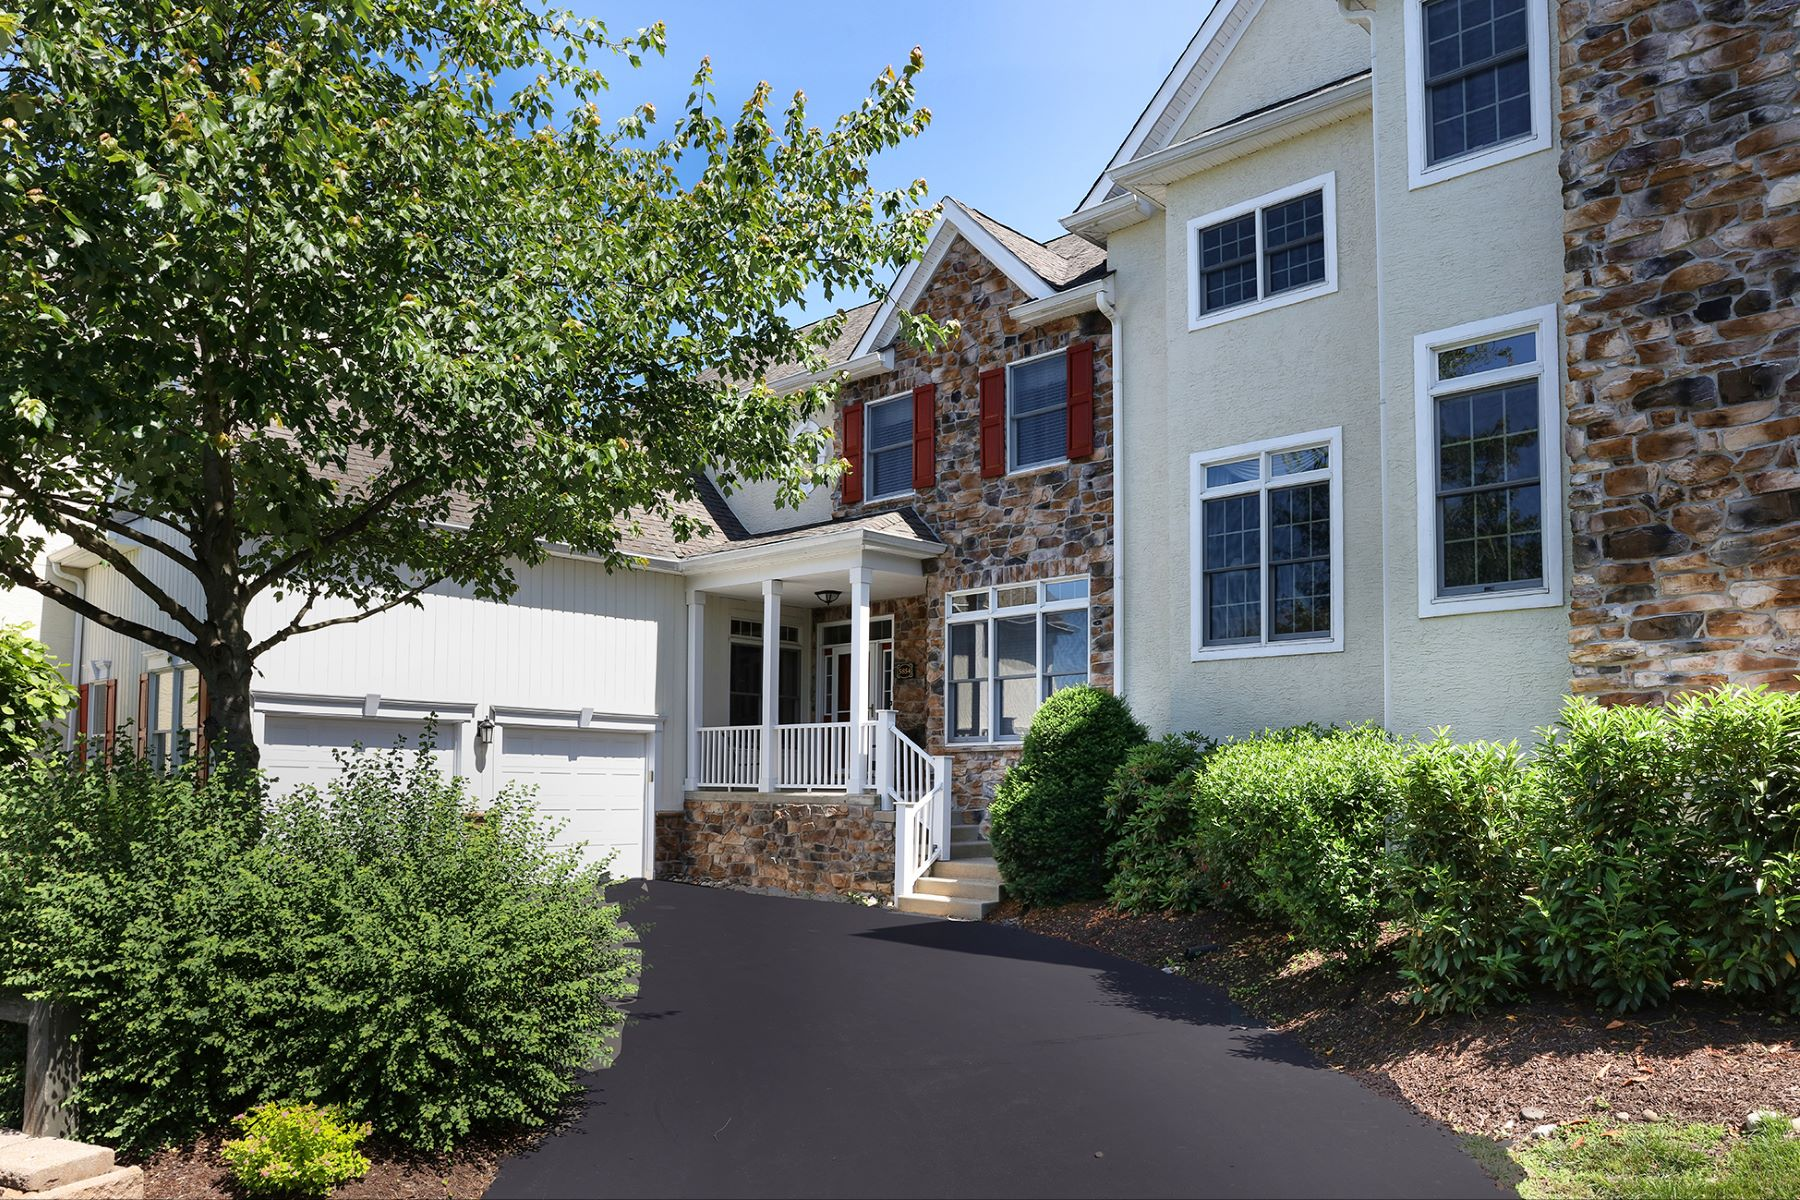 Casa unifamiliar adosada (Townhouse) por un Venta en Make The Move To Stone Ridge! 5854 Hickory Hollow Lane Unit 11, Doylestown, Pennsylvania 18902 Estados UnidosEn/Alrededor: Buckingham Township